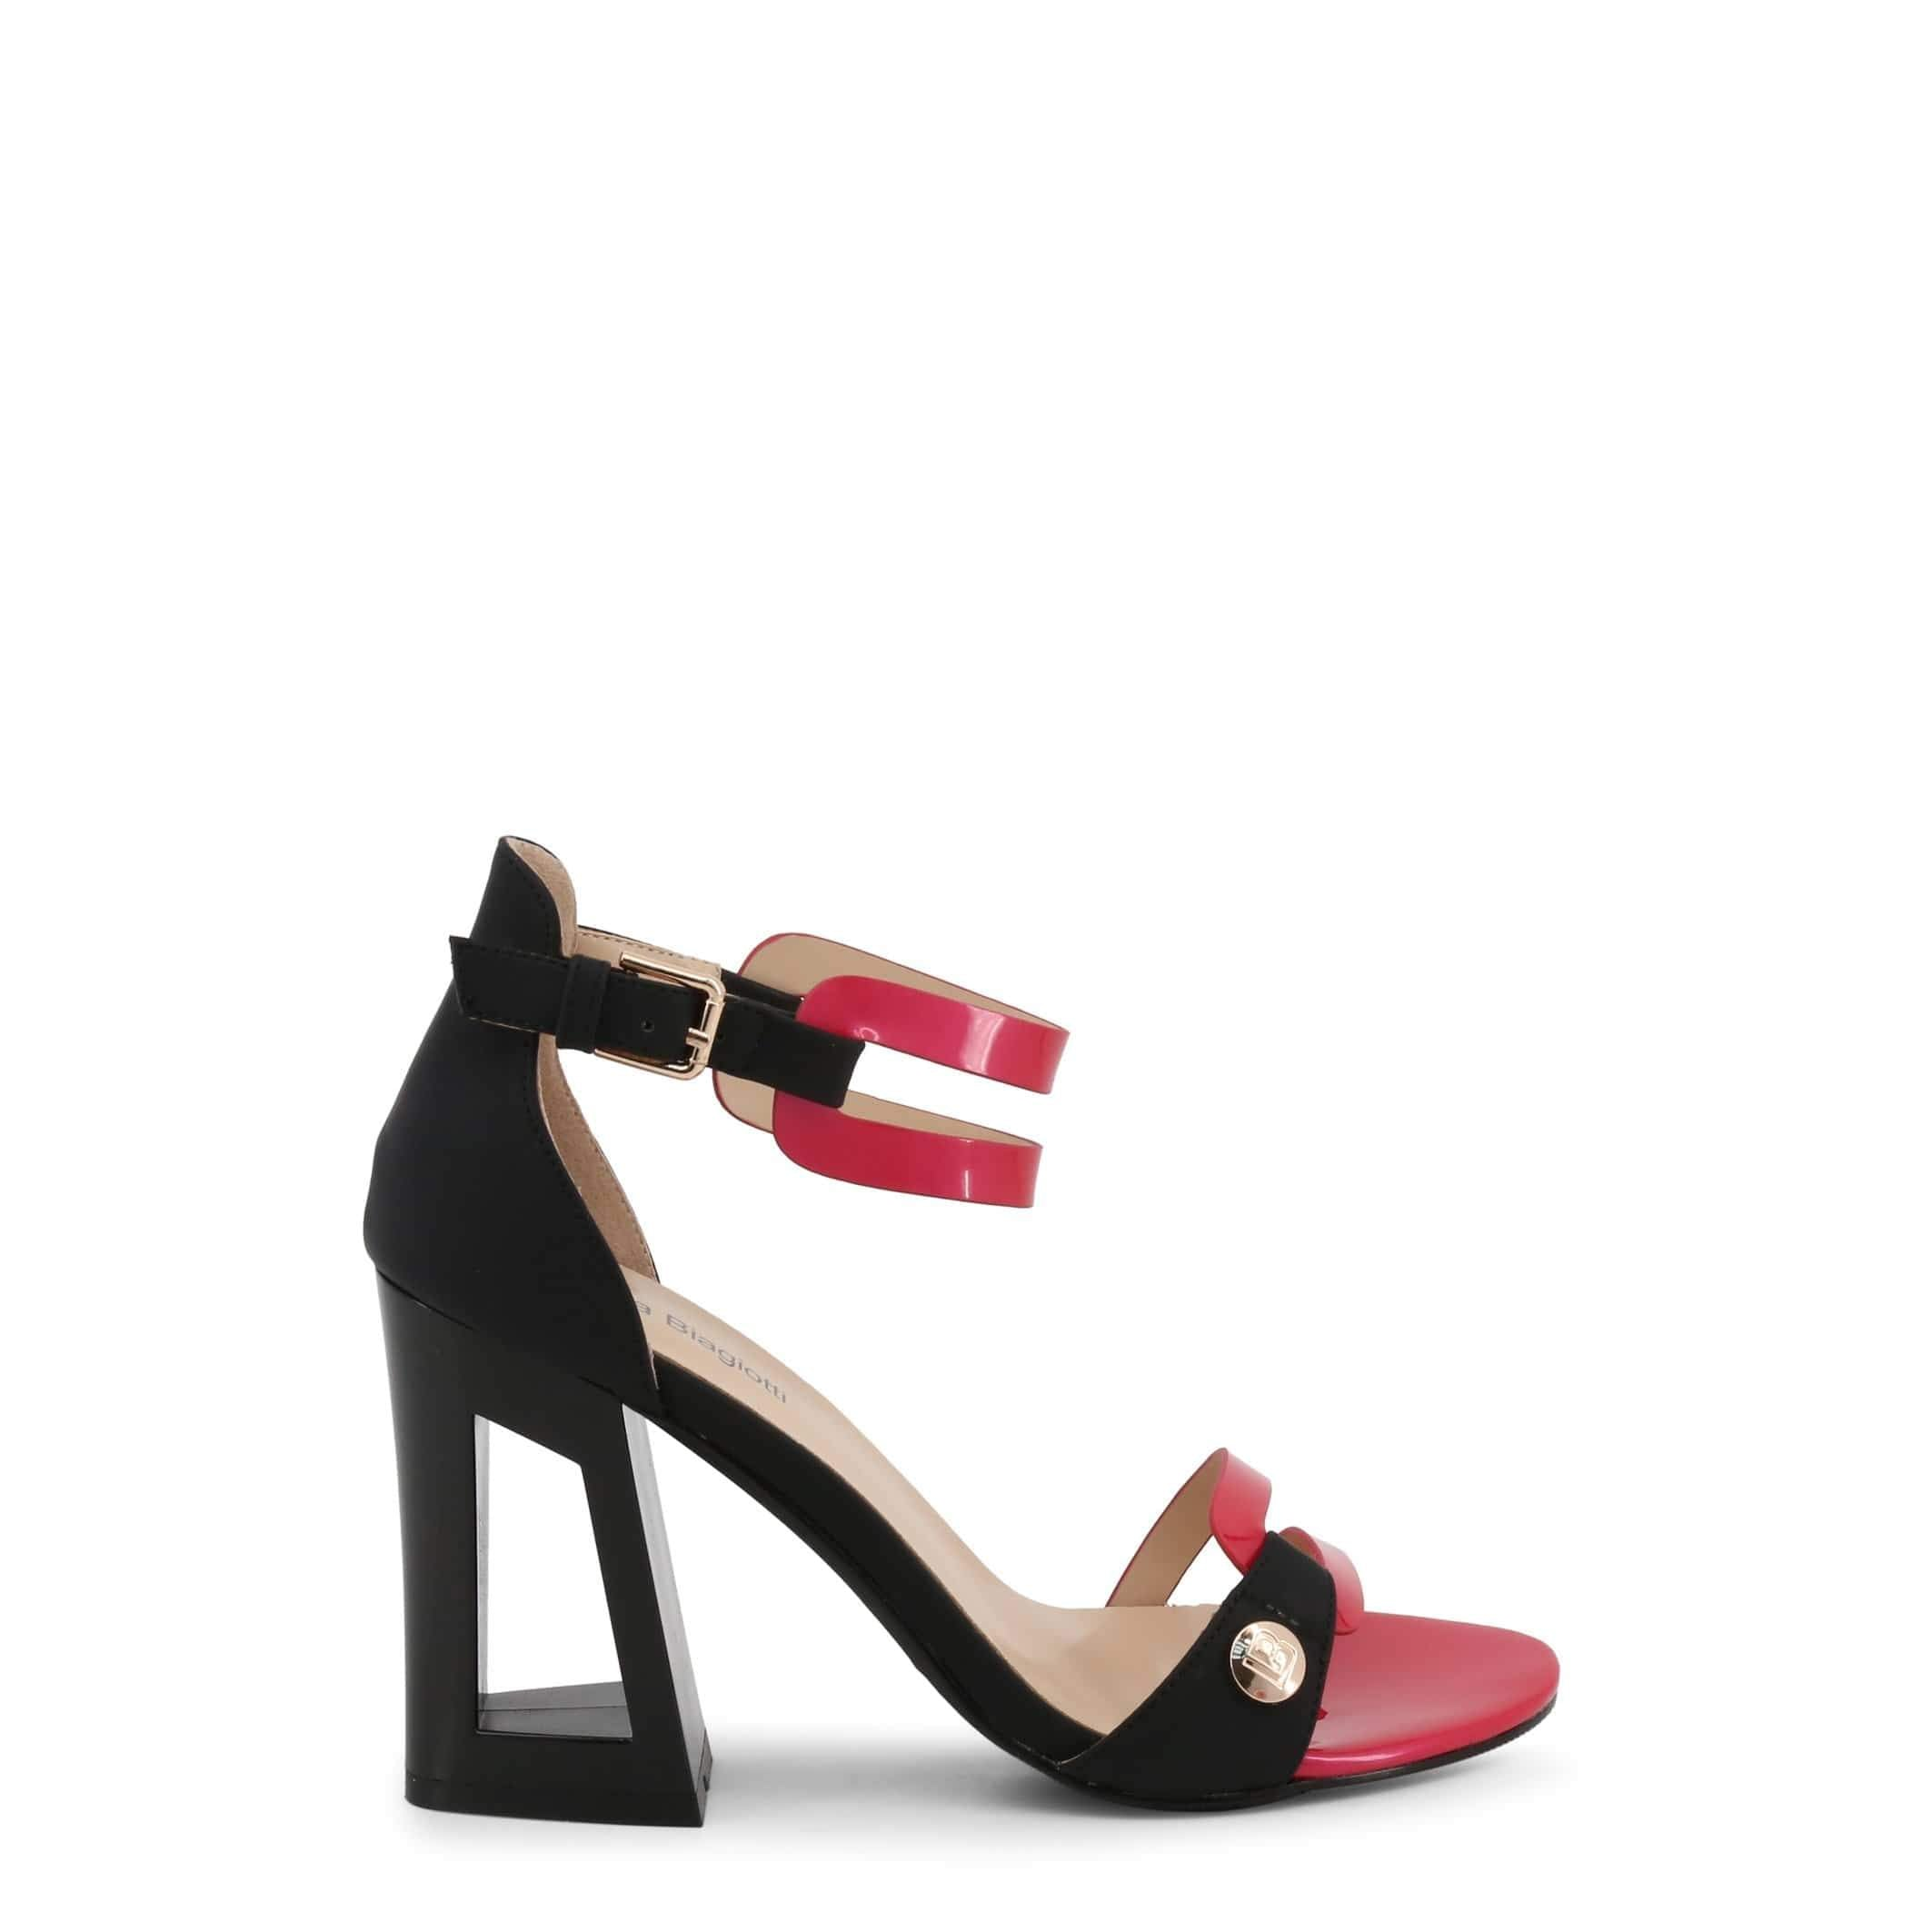 Laura Biagiotti Shoes Sandals pink / EU 38 Laura Biagiotti - 5309